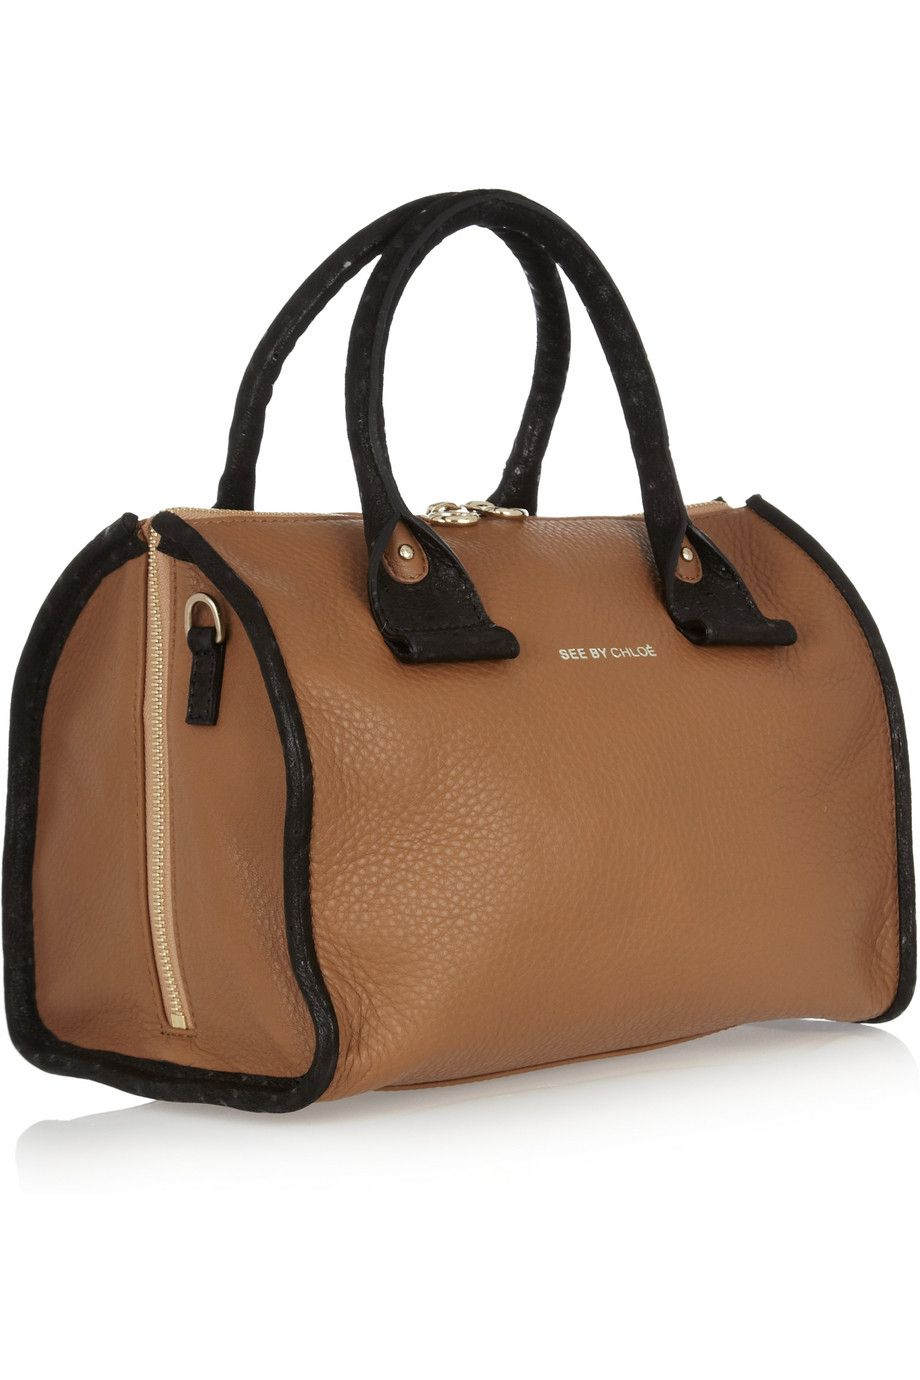 April leather duffle bag ¬ See by Chloé